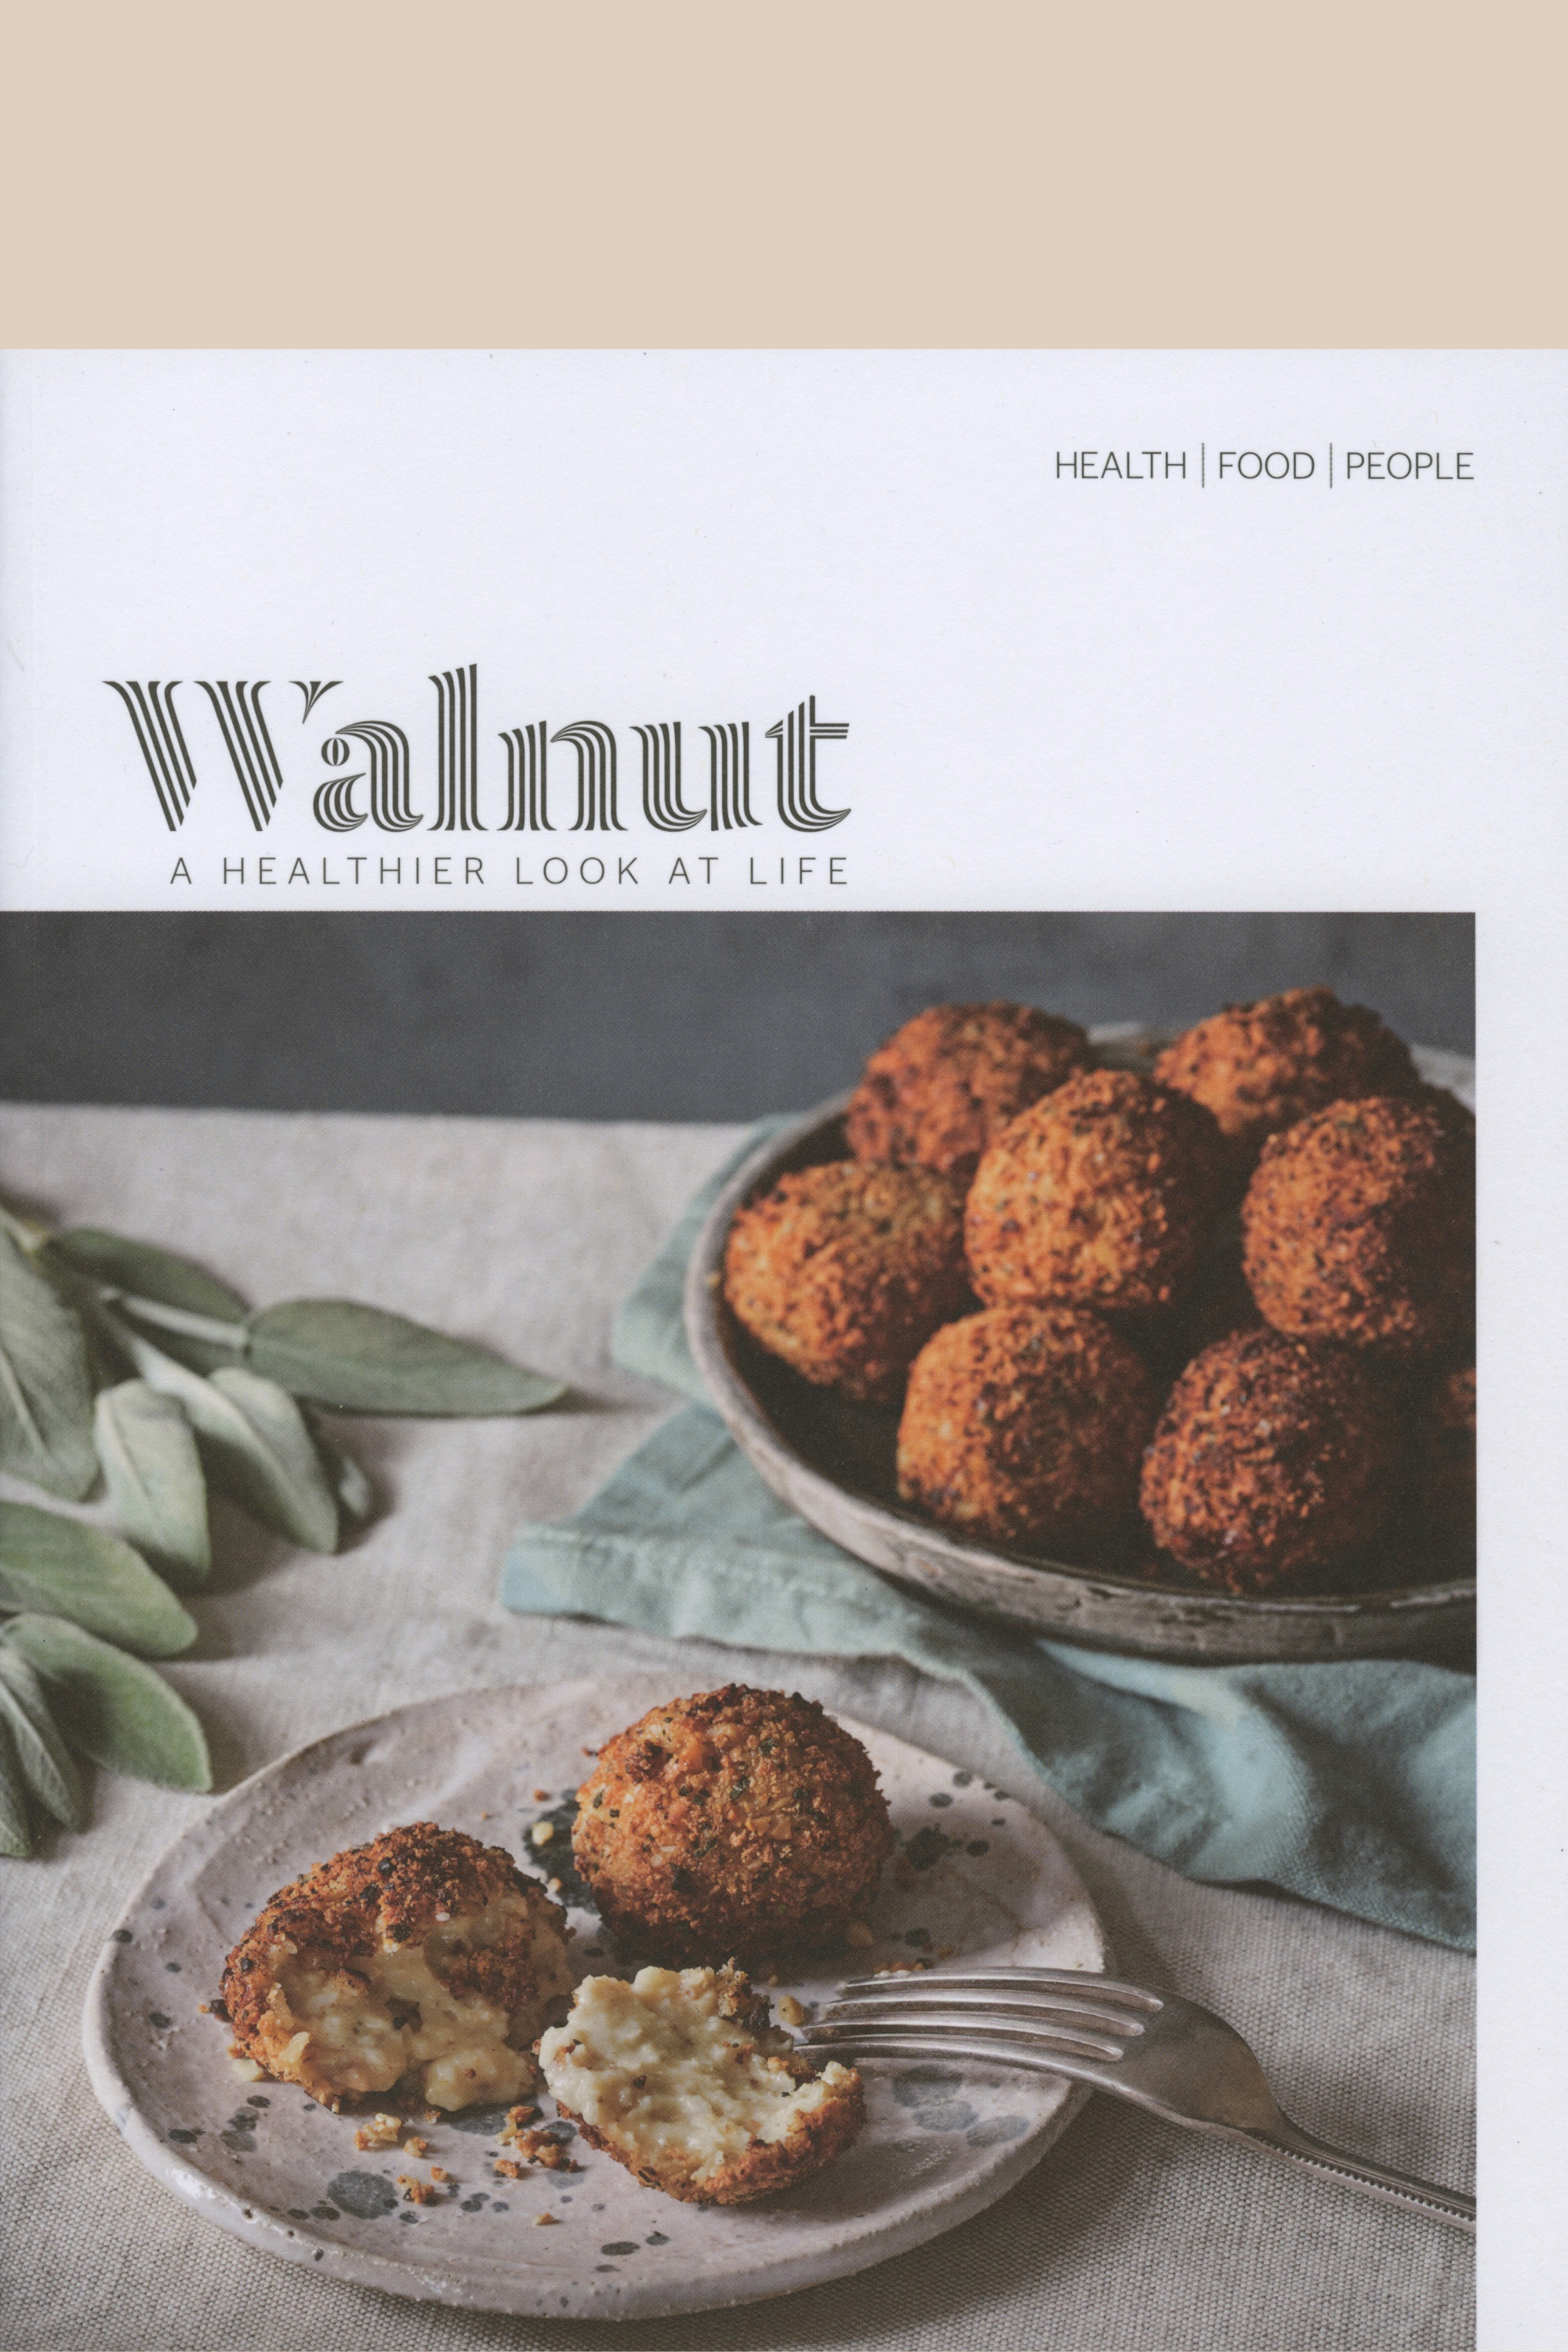 Walnut Issue 6